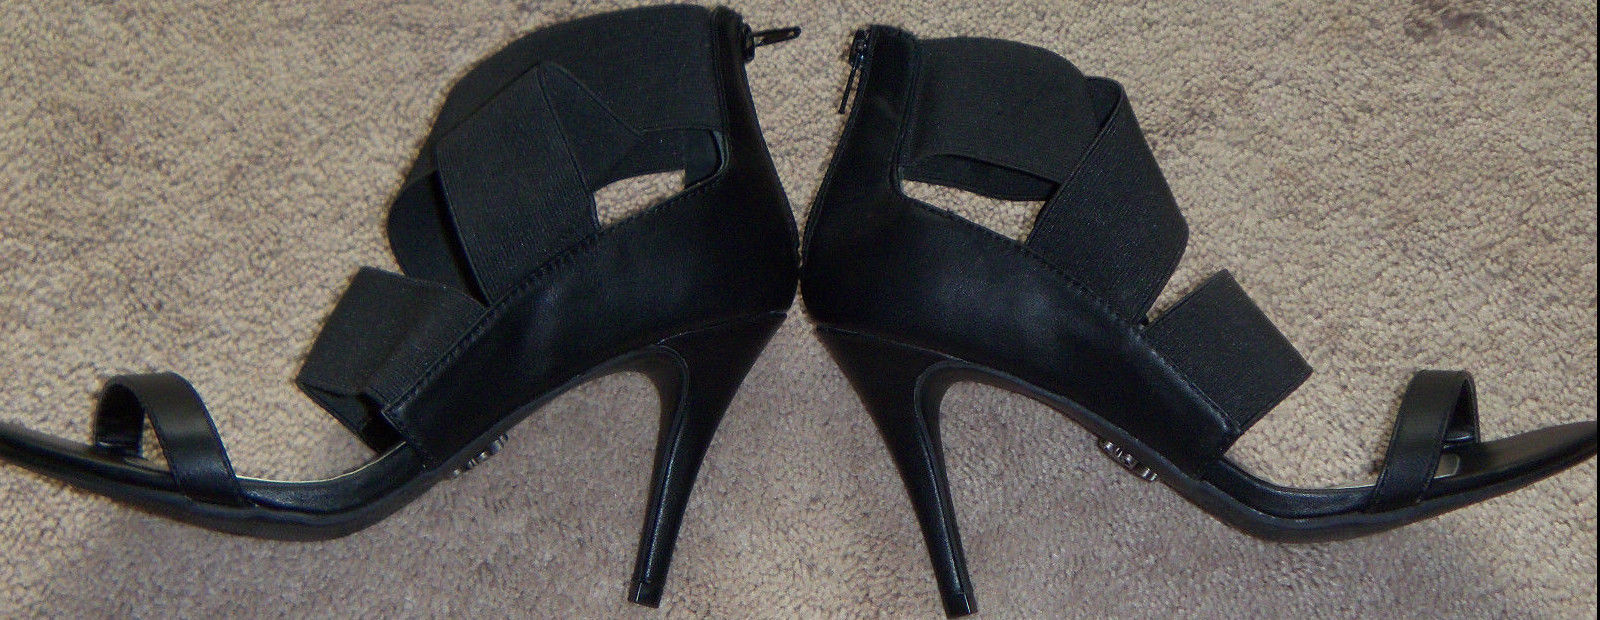 Primary image for New Womens Simply Vera Vera Wang Brianne Black Stiletto Heels Size 7.5 Back Zip